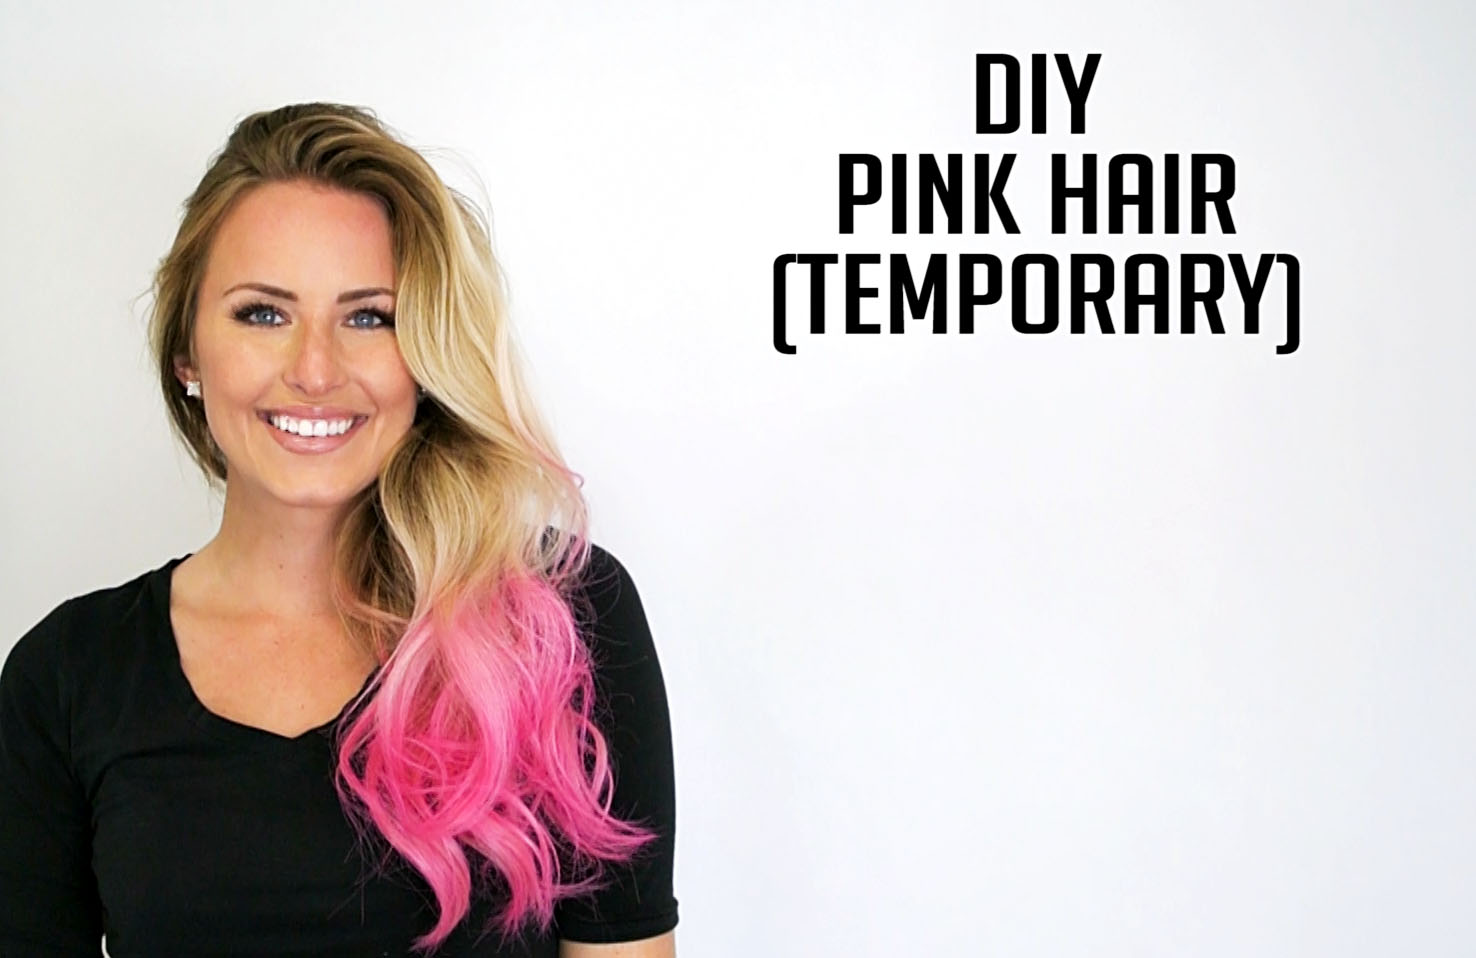 DIY Temporary Hair Color! Coats the hair so it works on all colors, looks great, and washes out completely on the first wash. Where has this been all my life? Ion Airbrush Tint for the win!